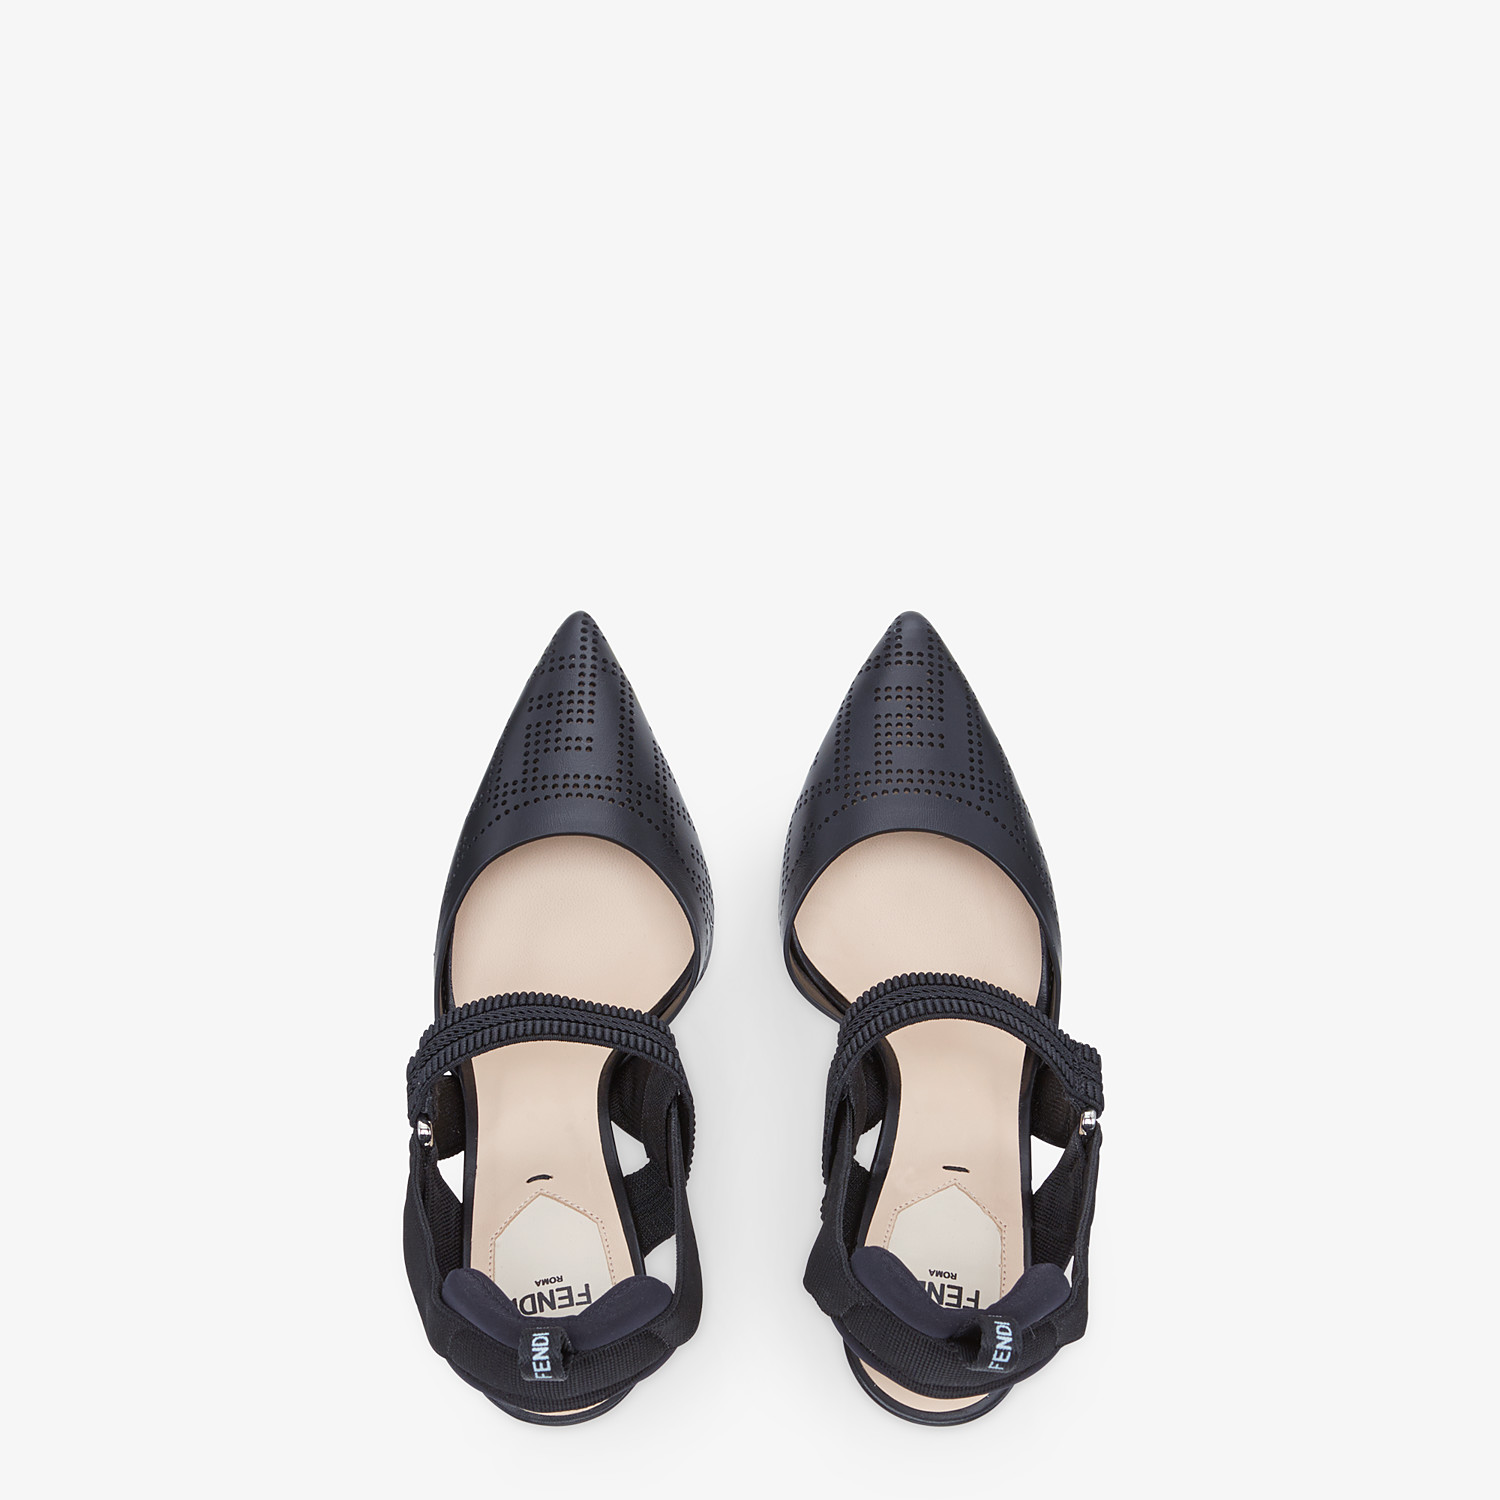 FENDI SLINGBACKS - Black leather Colibrì slingbacks - view 4 detail